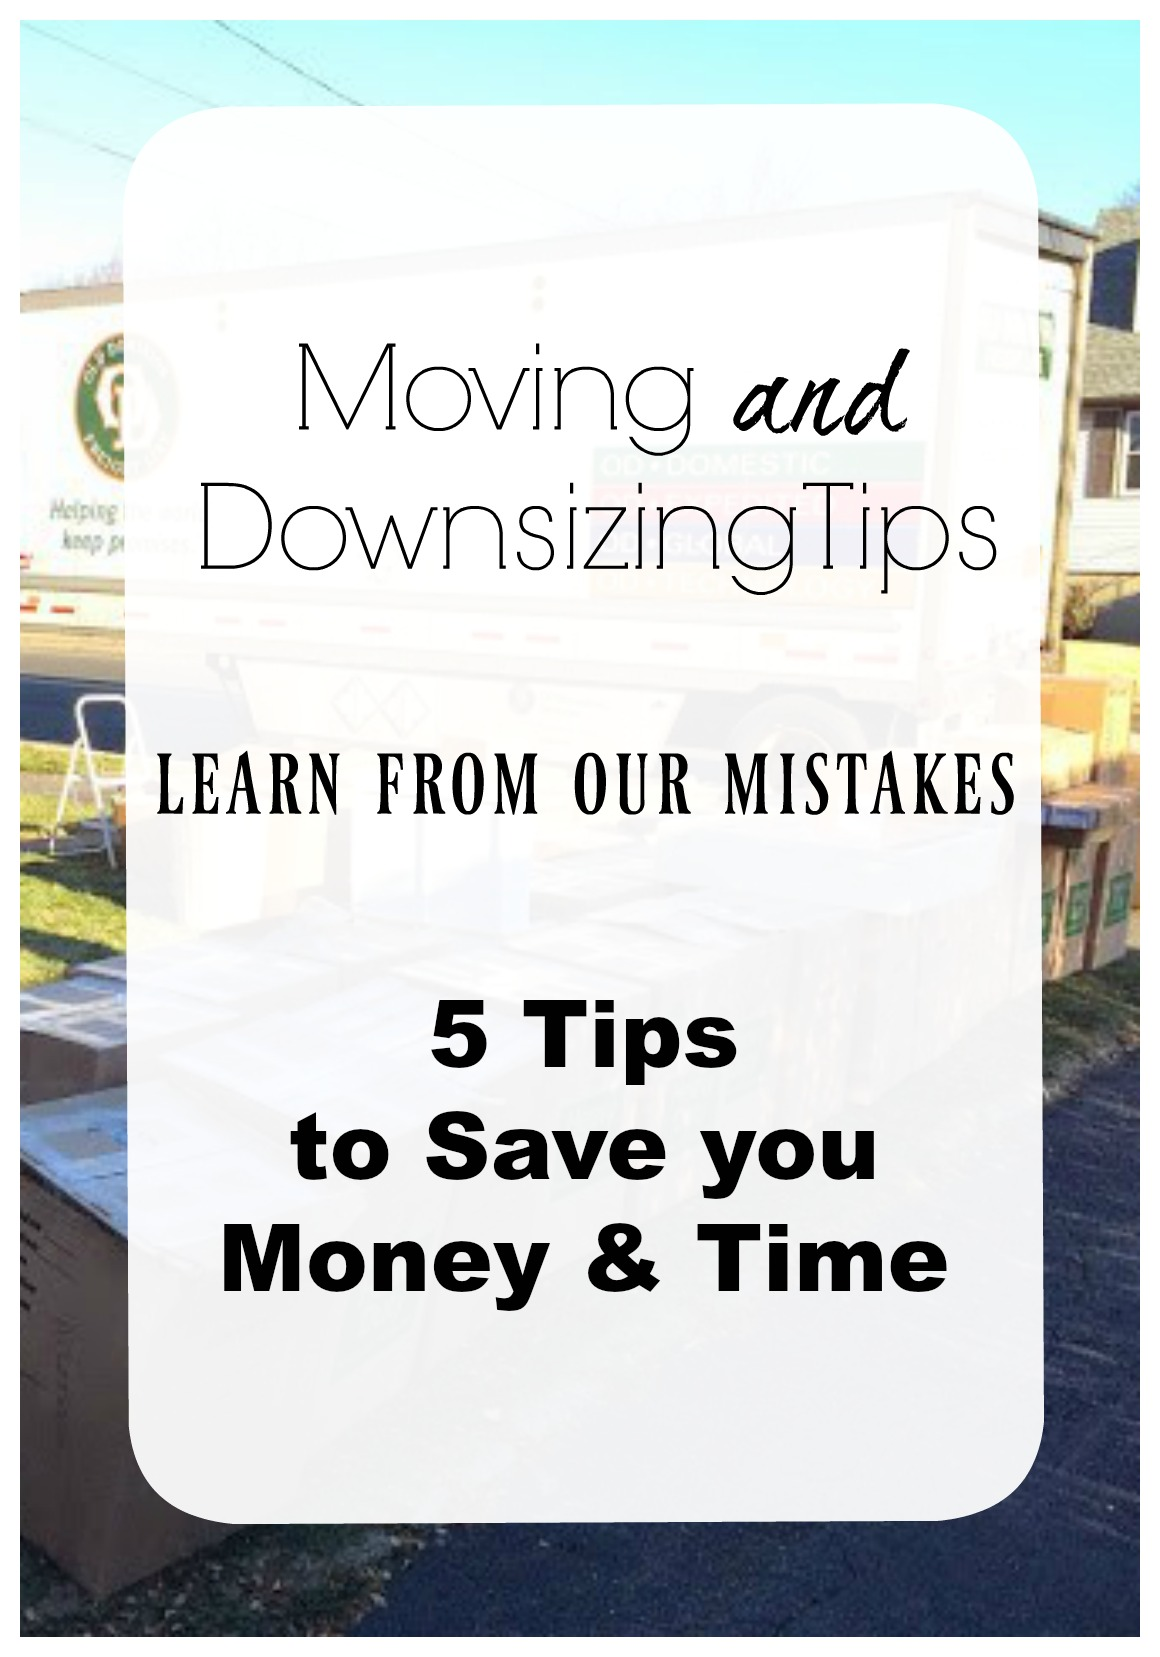 Moving and Downsizing Tips- 5 Tips to Save you Money and Time